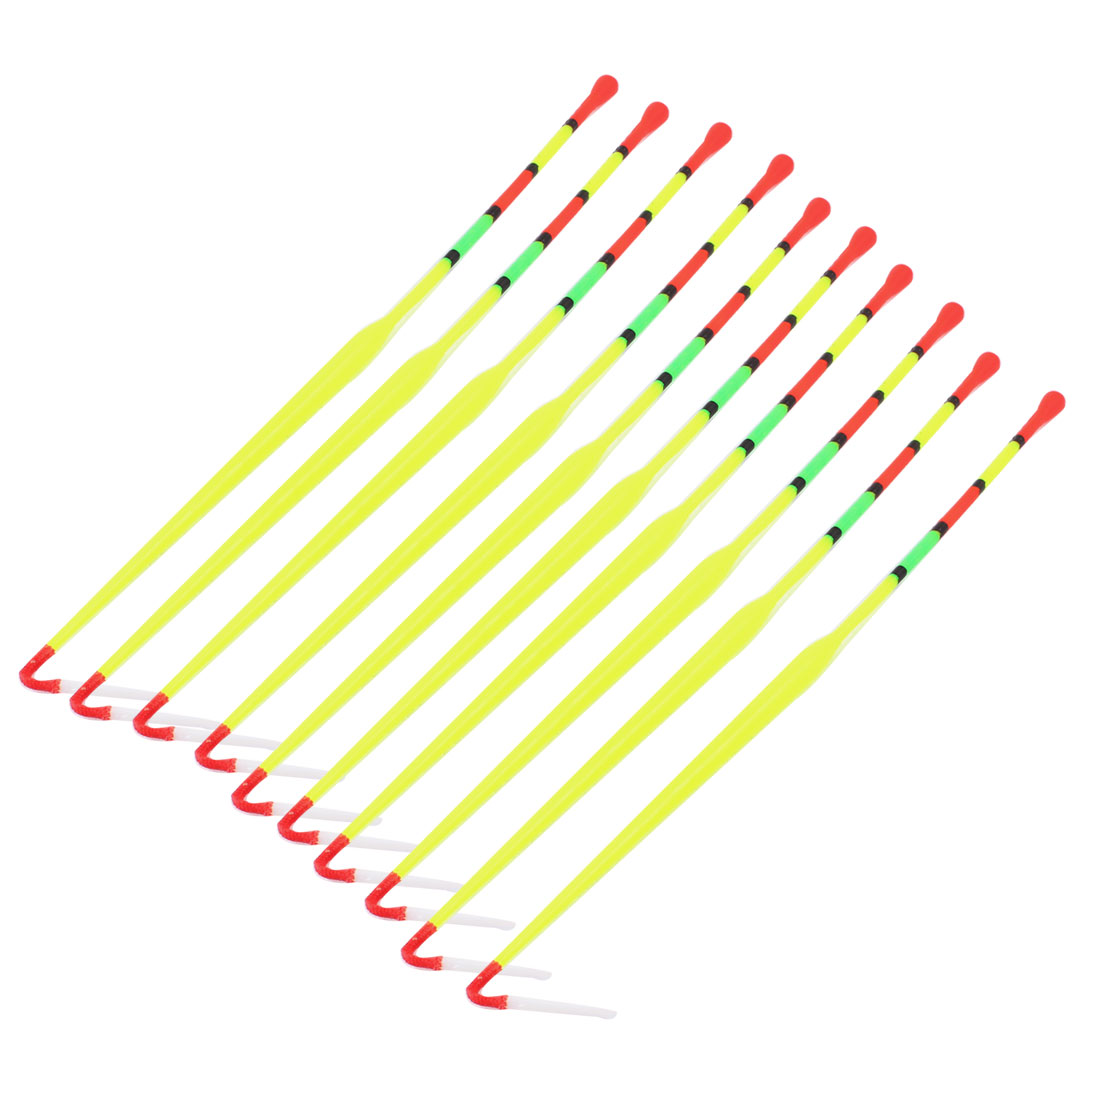 "Click here to buy Unique Bargains 10 Pcs Multicolored Fishing Floaters Bobbers 9.4"" Long by Unique-Bargains."